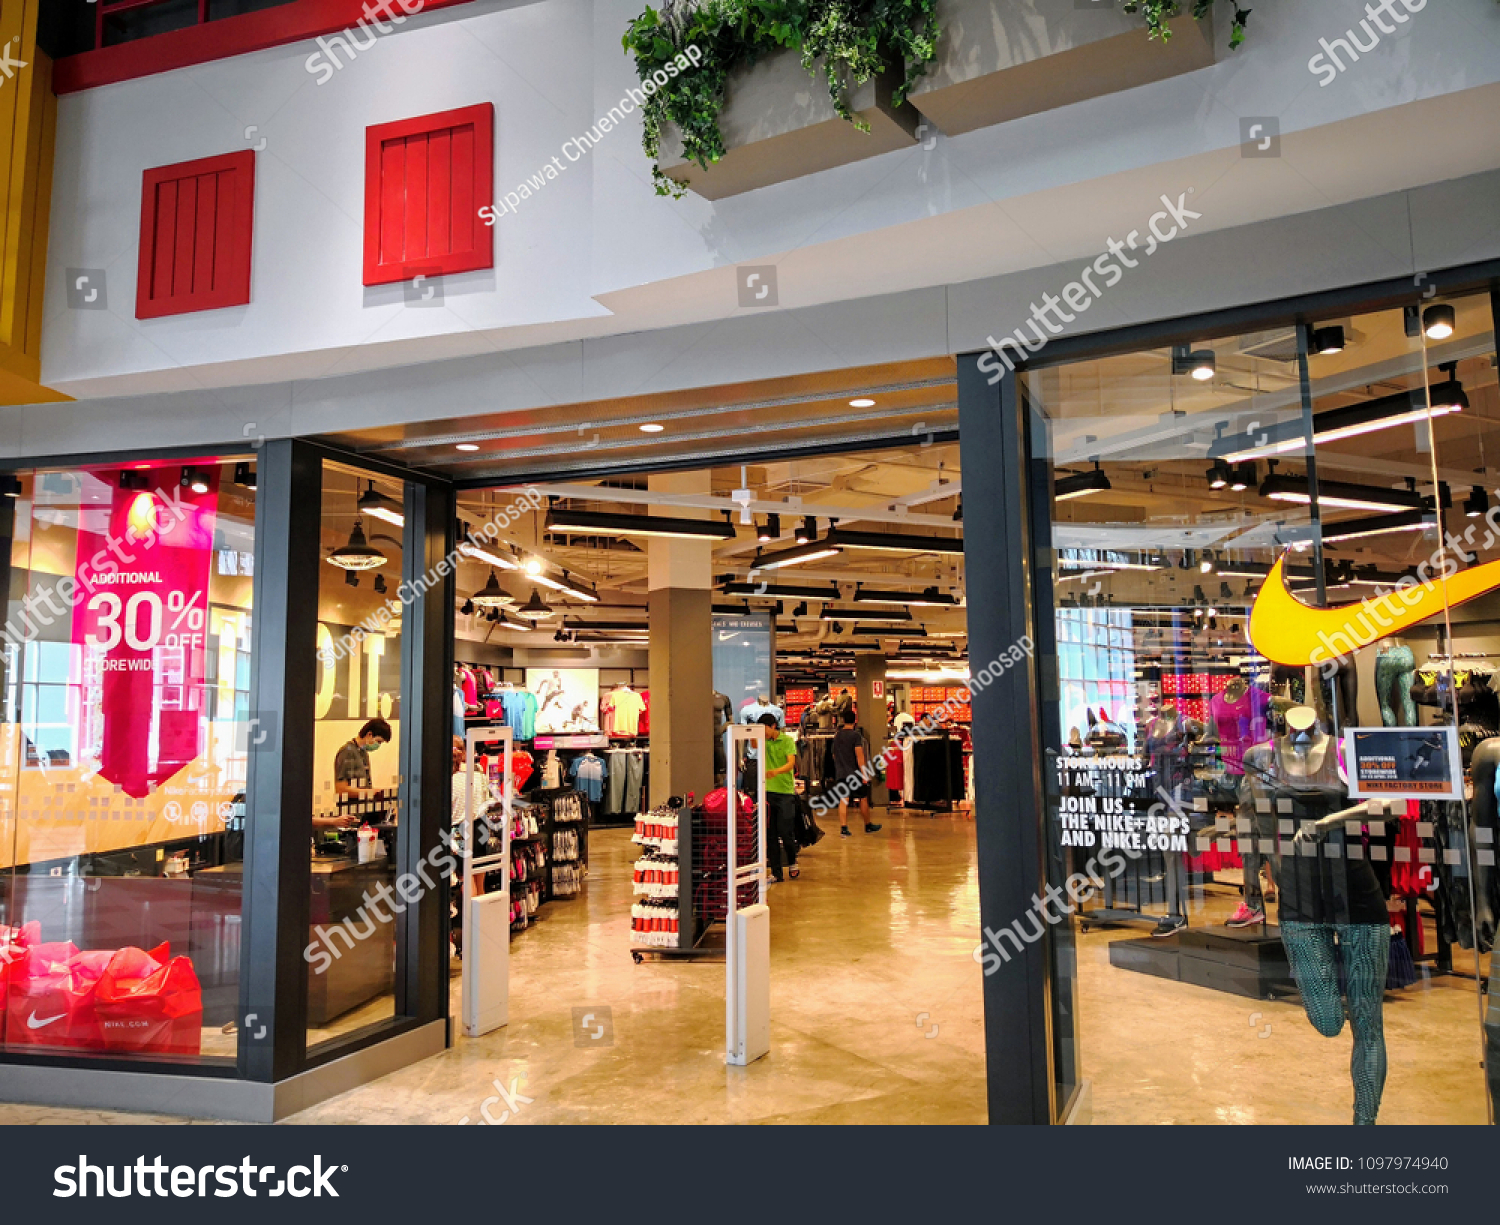 56d2513a2042c Pattaya Thailand April 20 2018 Nike Stock Photo (Edit Now ...